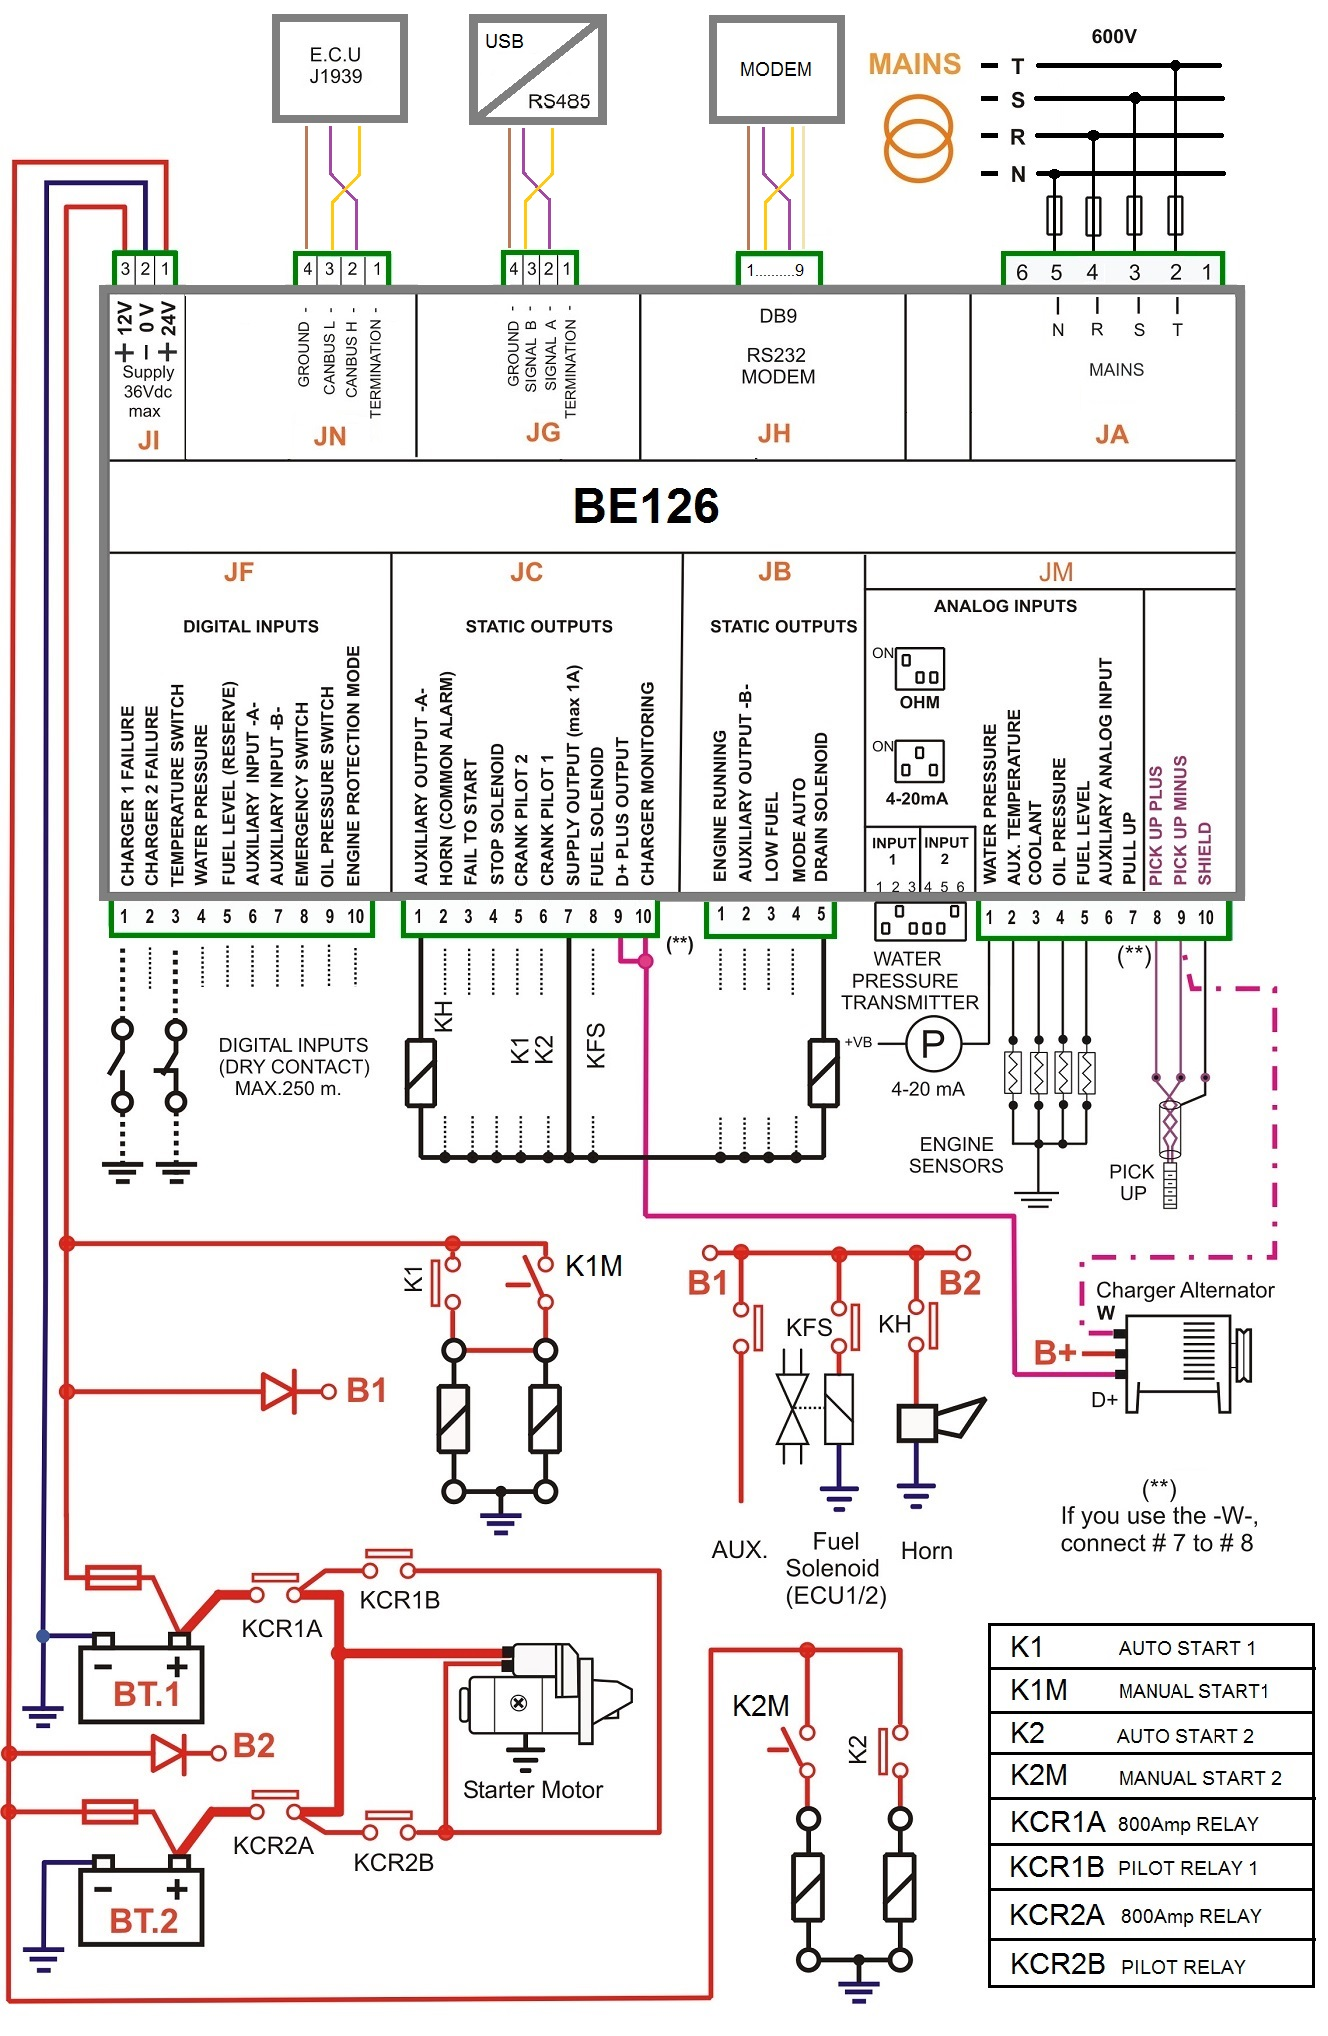 hight resolution of fire pump controller wiring diagram generator controllers pump control panel wiring diagram schematic fire pump controller